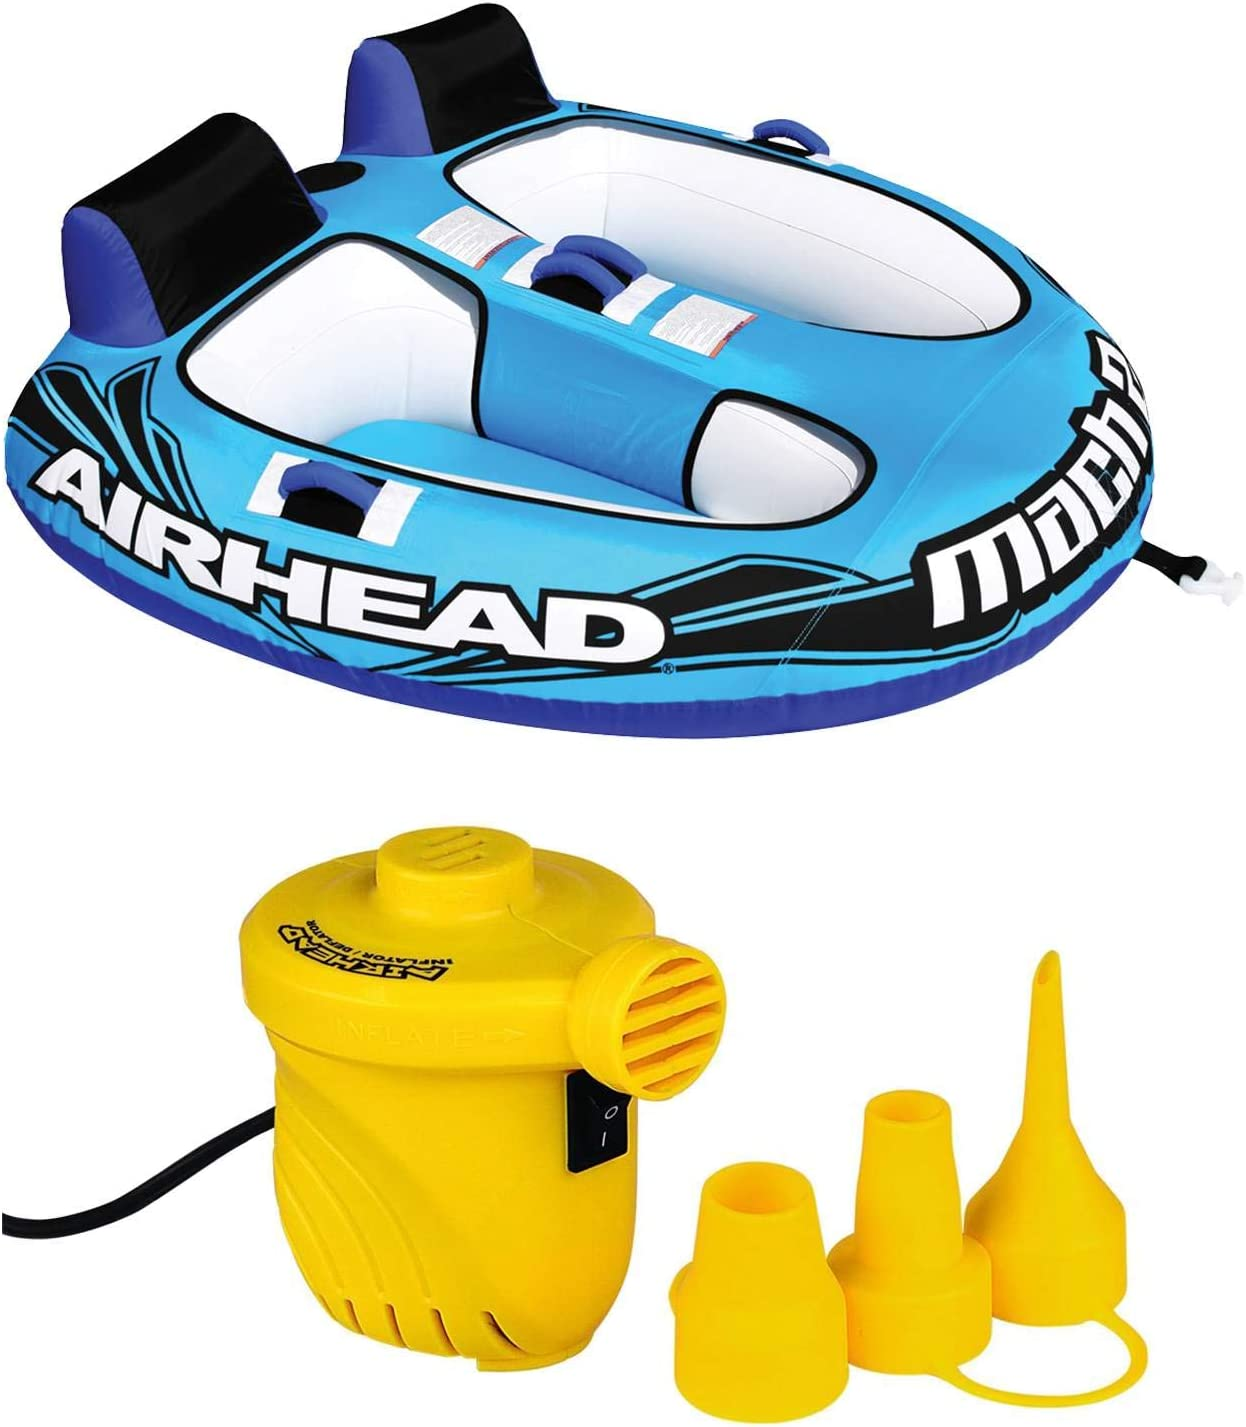 Airhead Air Pump 12V For All Tubes Towables Inflatable Tube Pool Float Boat